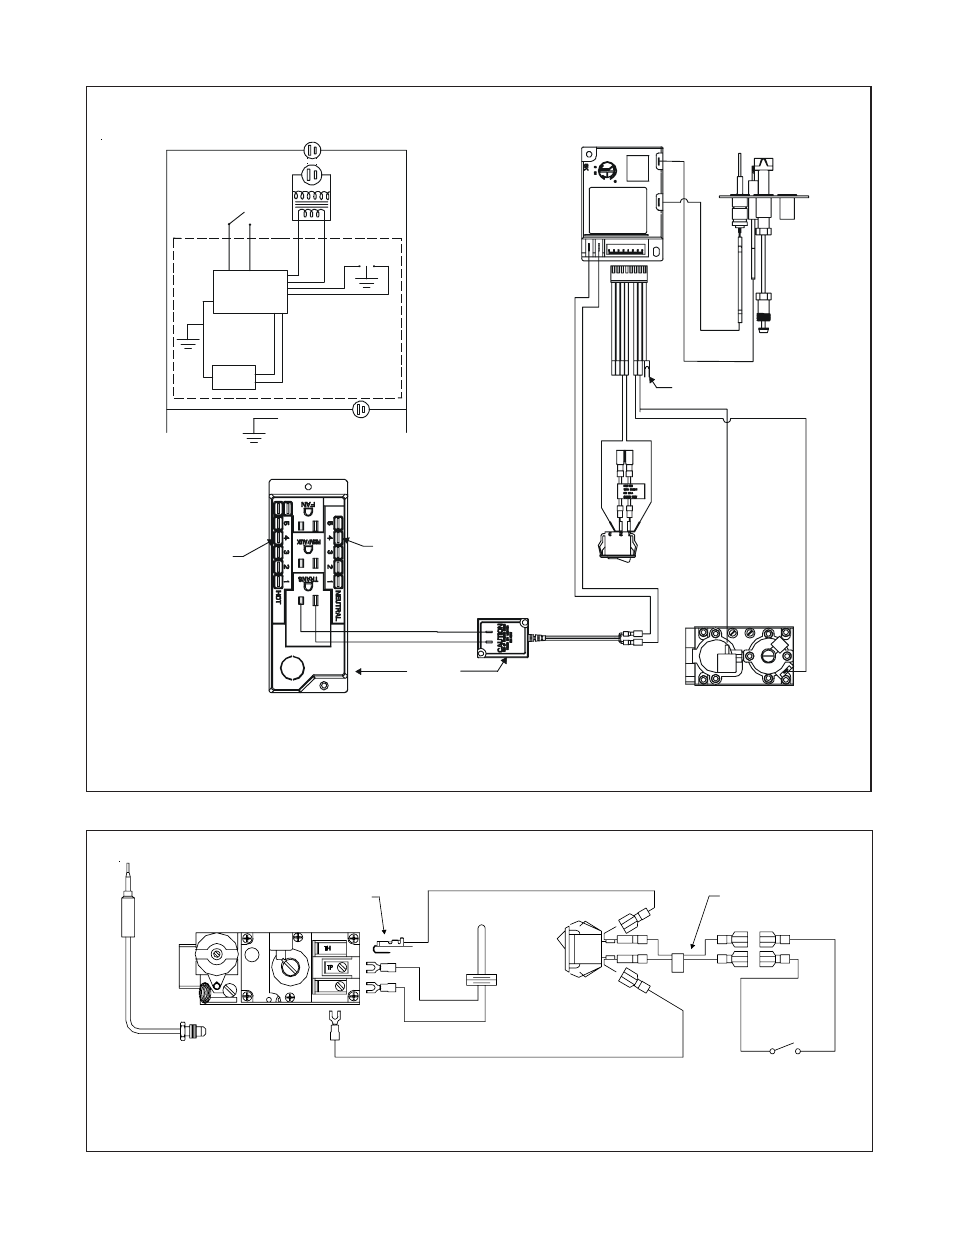 fireplace remote sensor wiring diagram